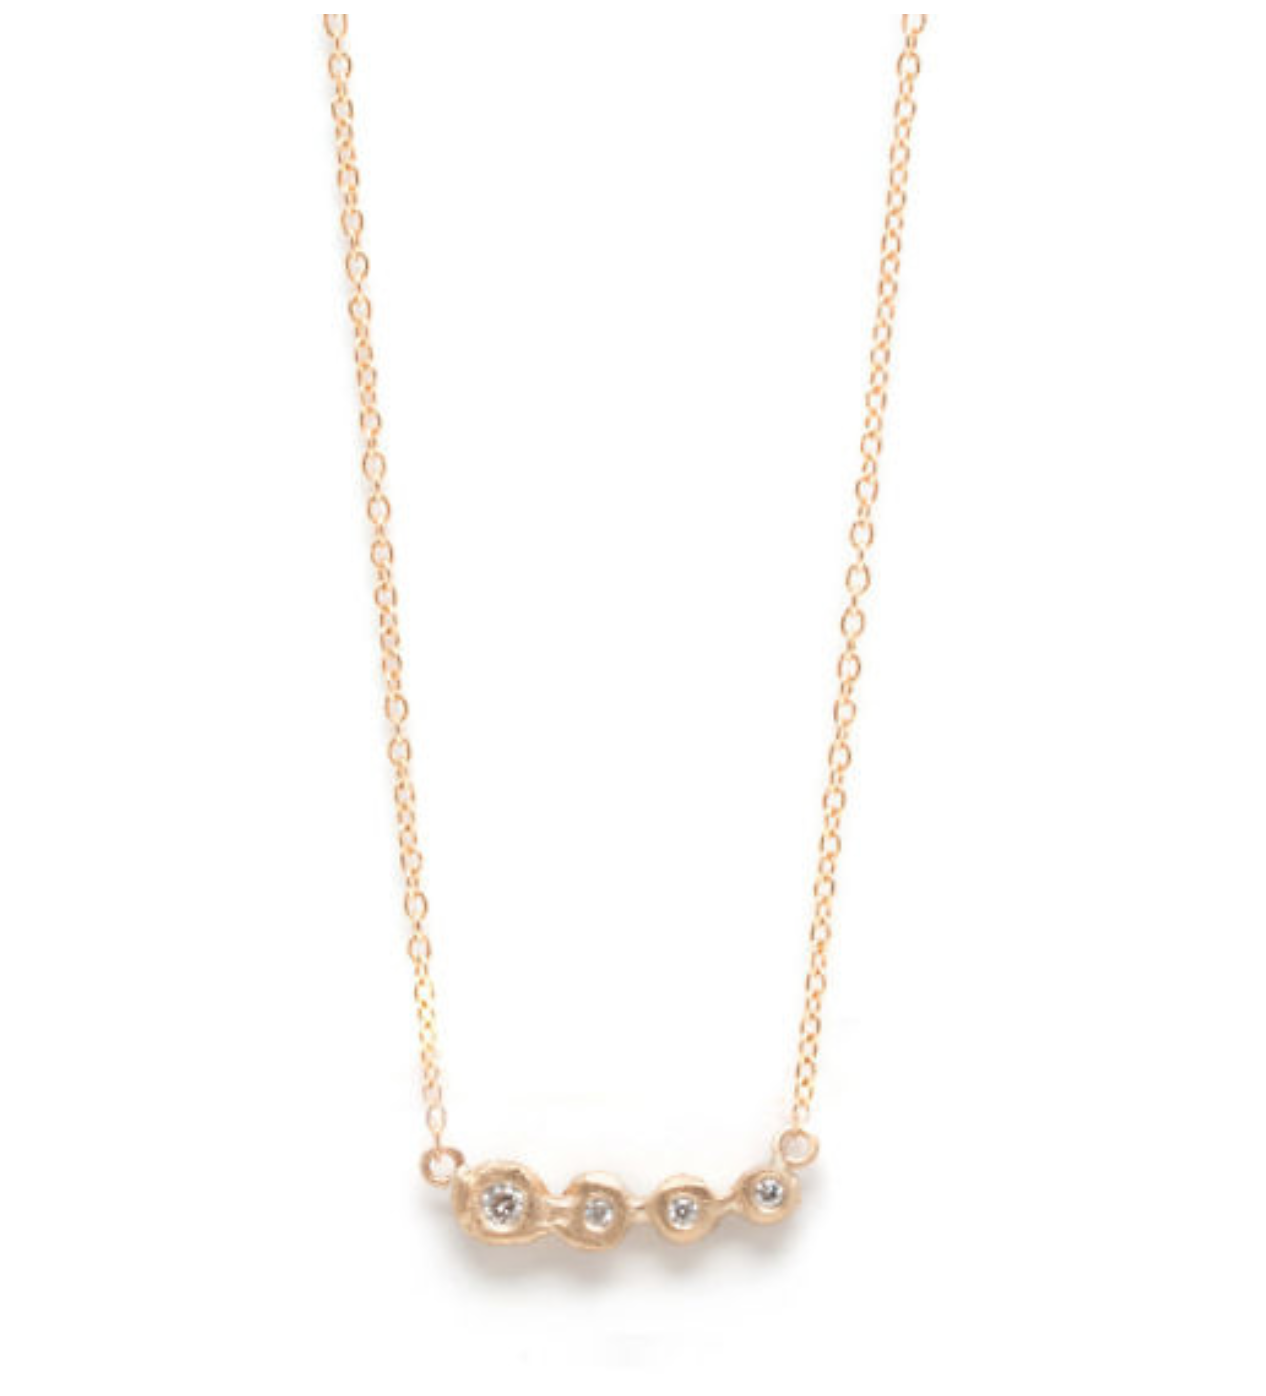 My Favorite Jewelry Designers For Unique Jewelry: Jane Pope Jewelry FOUR POINT DIAMOND NECKLACE